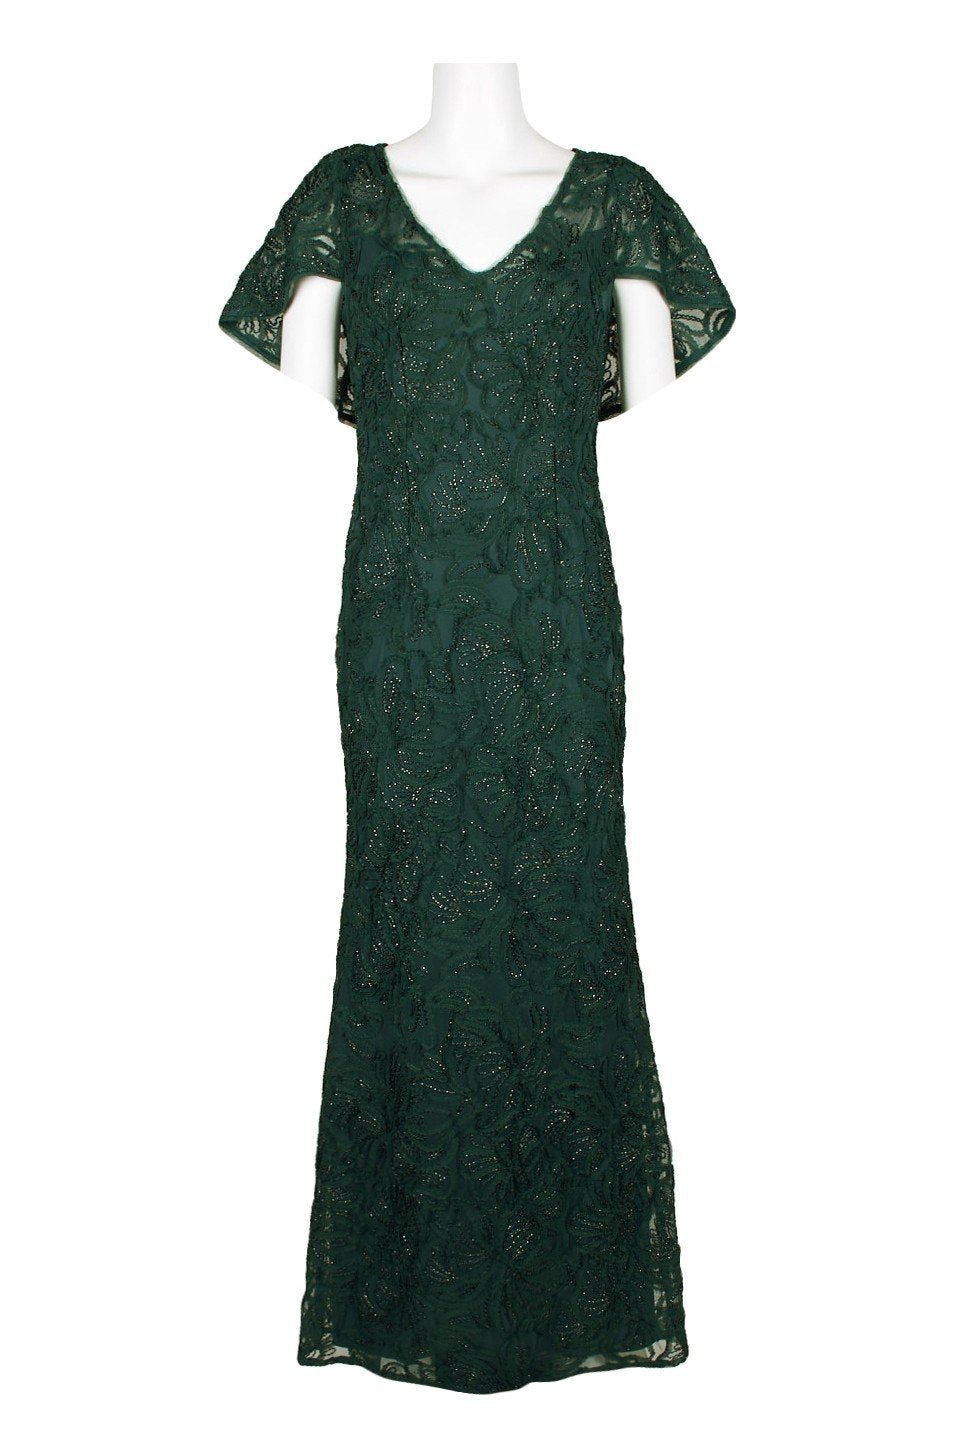 Adrianna Papell - AP1E206303 Embellished Lace Trumpet Dress In Green